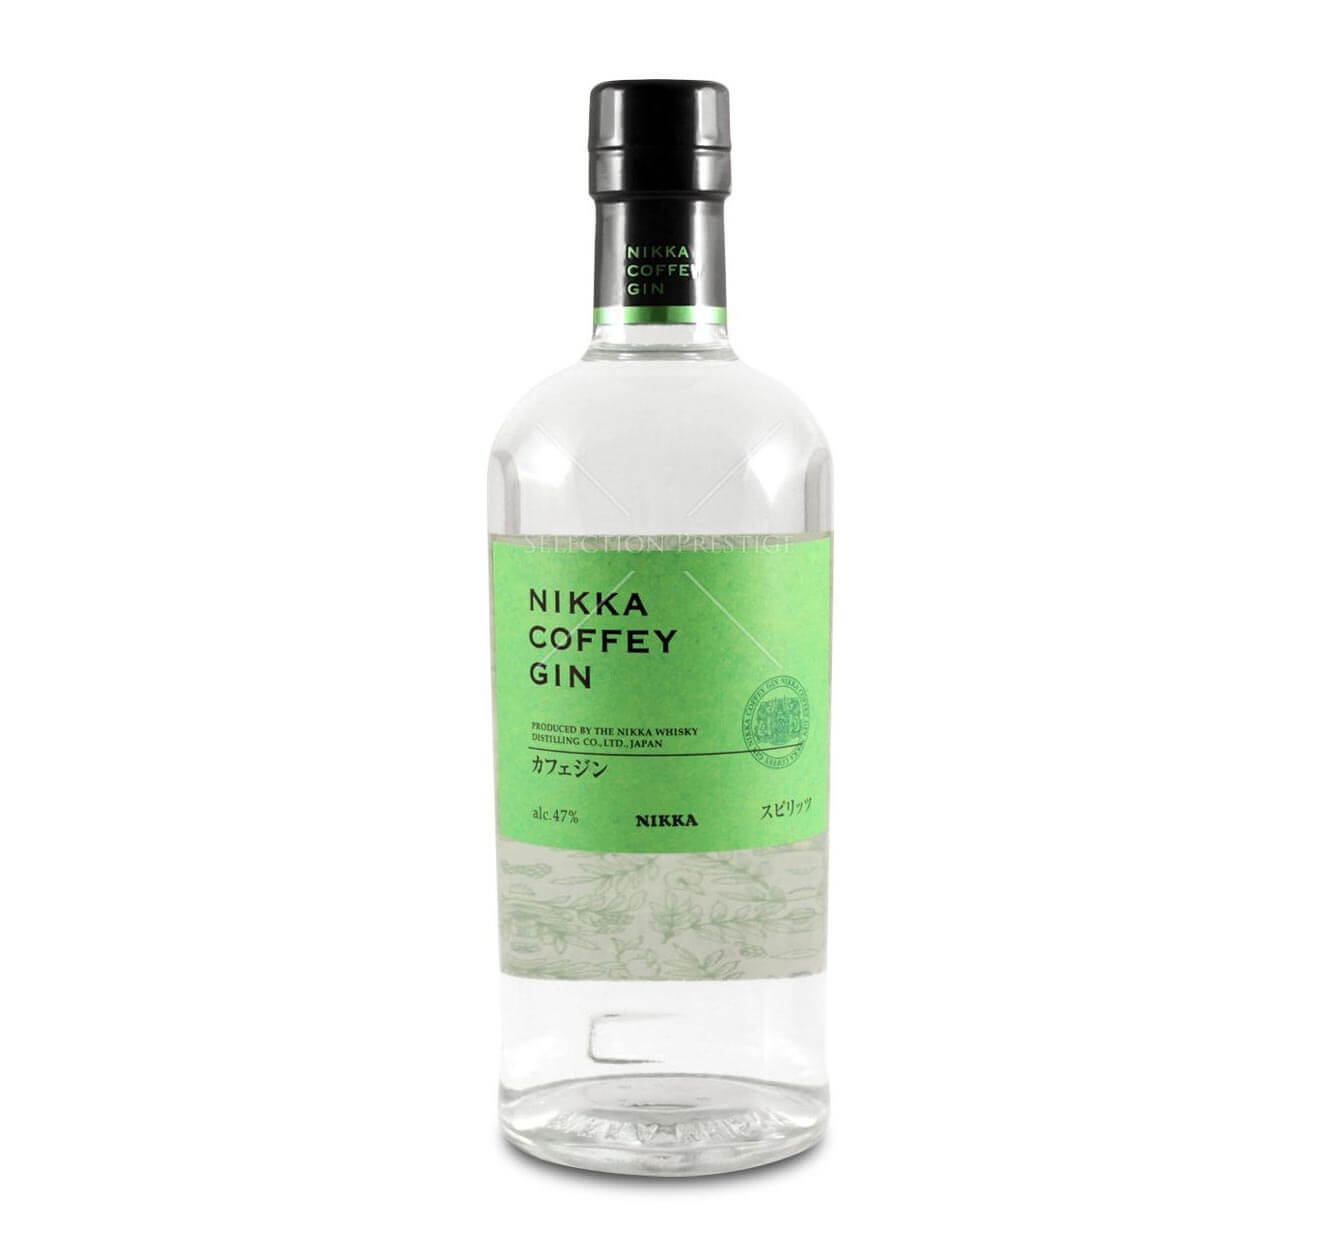 Nikka Coffey Gin, bottle on white